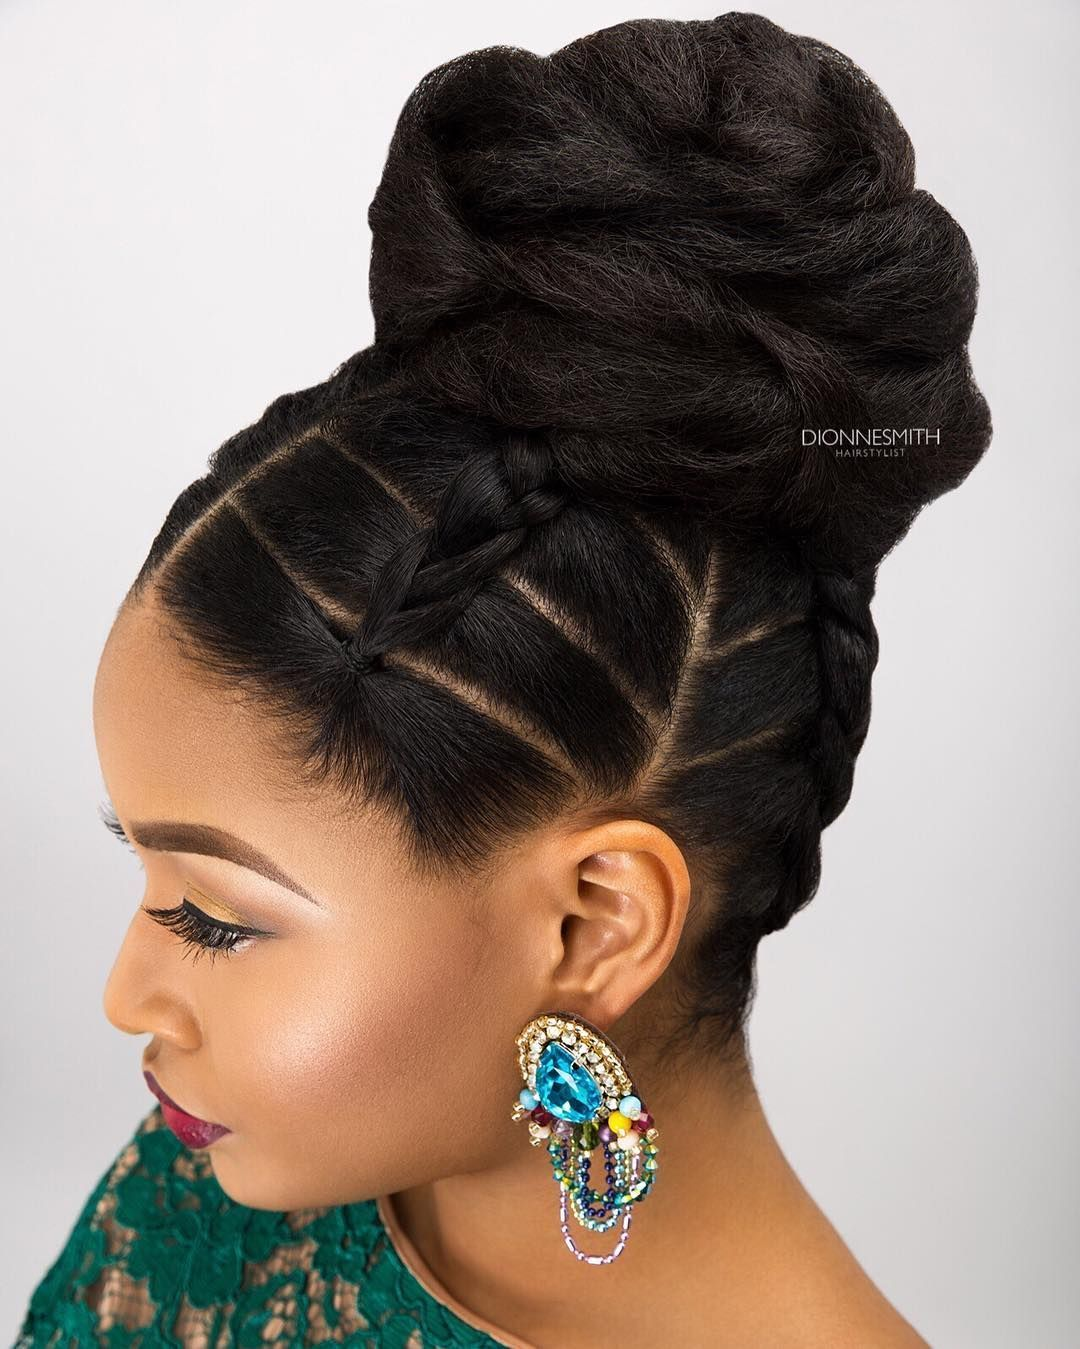 45 Gorgeous Natural Hairstyles For When You Want To Look Glam Diy